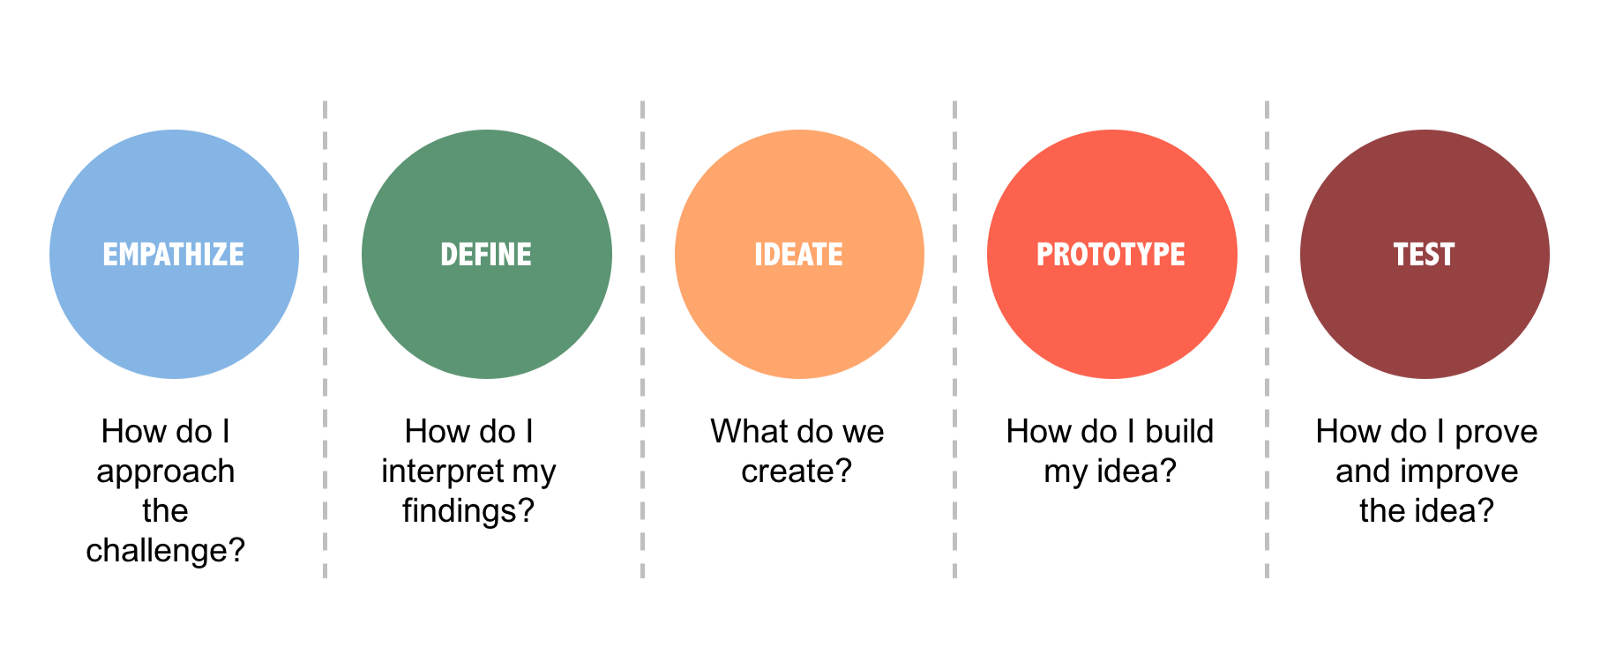 5 Tips for Bringing Design Thinking into Your Organization